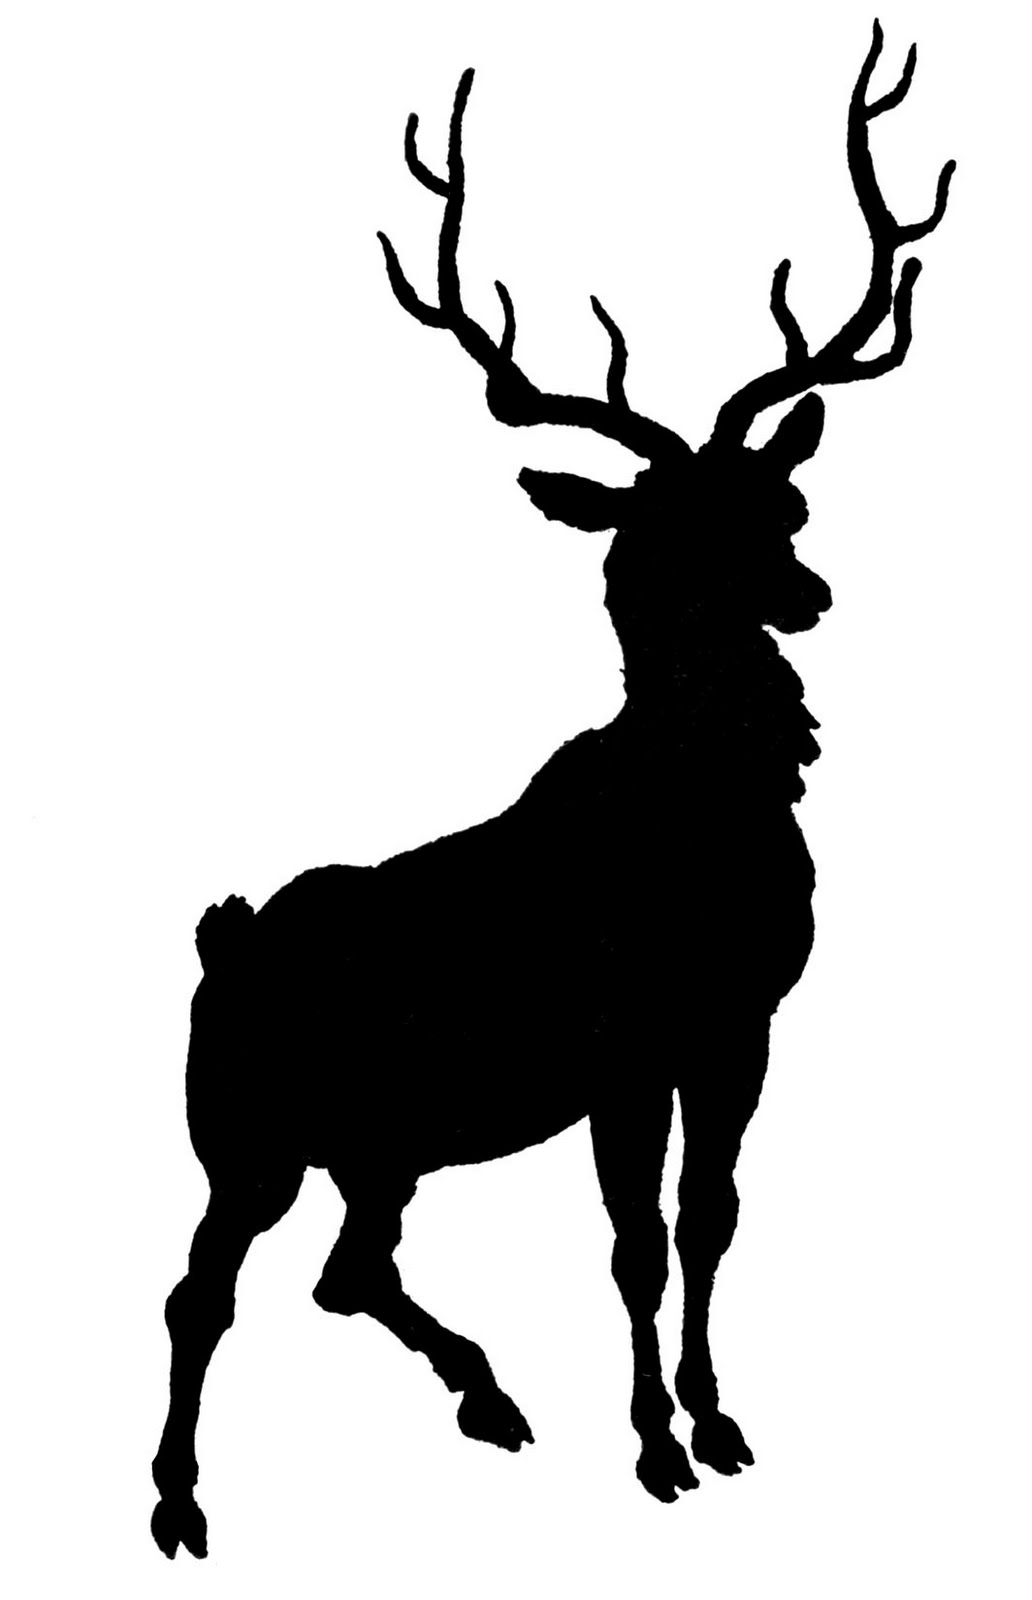 Clipart stag png royalty free download Free Stag Silhouette, Download Free Clip Art, Free Clip Art on ... png royalty free download